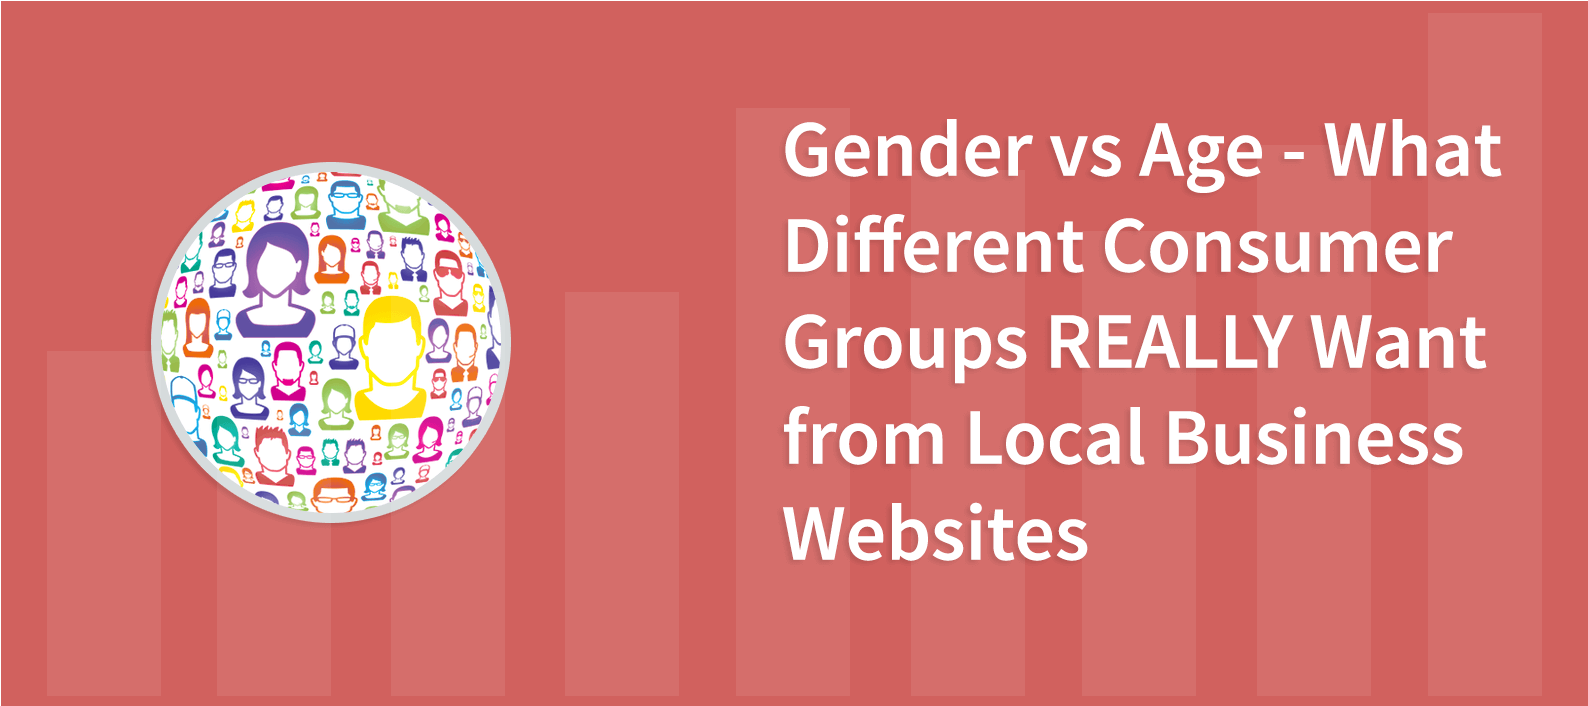 Gender vs Age – What Different Consumer Groups REALLY Want from Local Business Websites